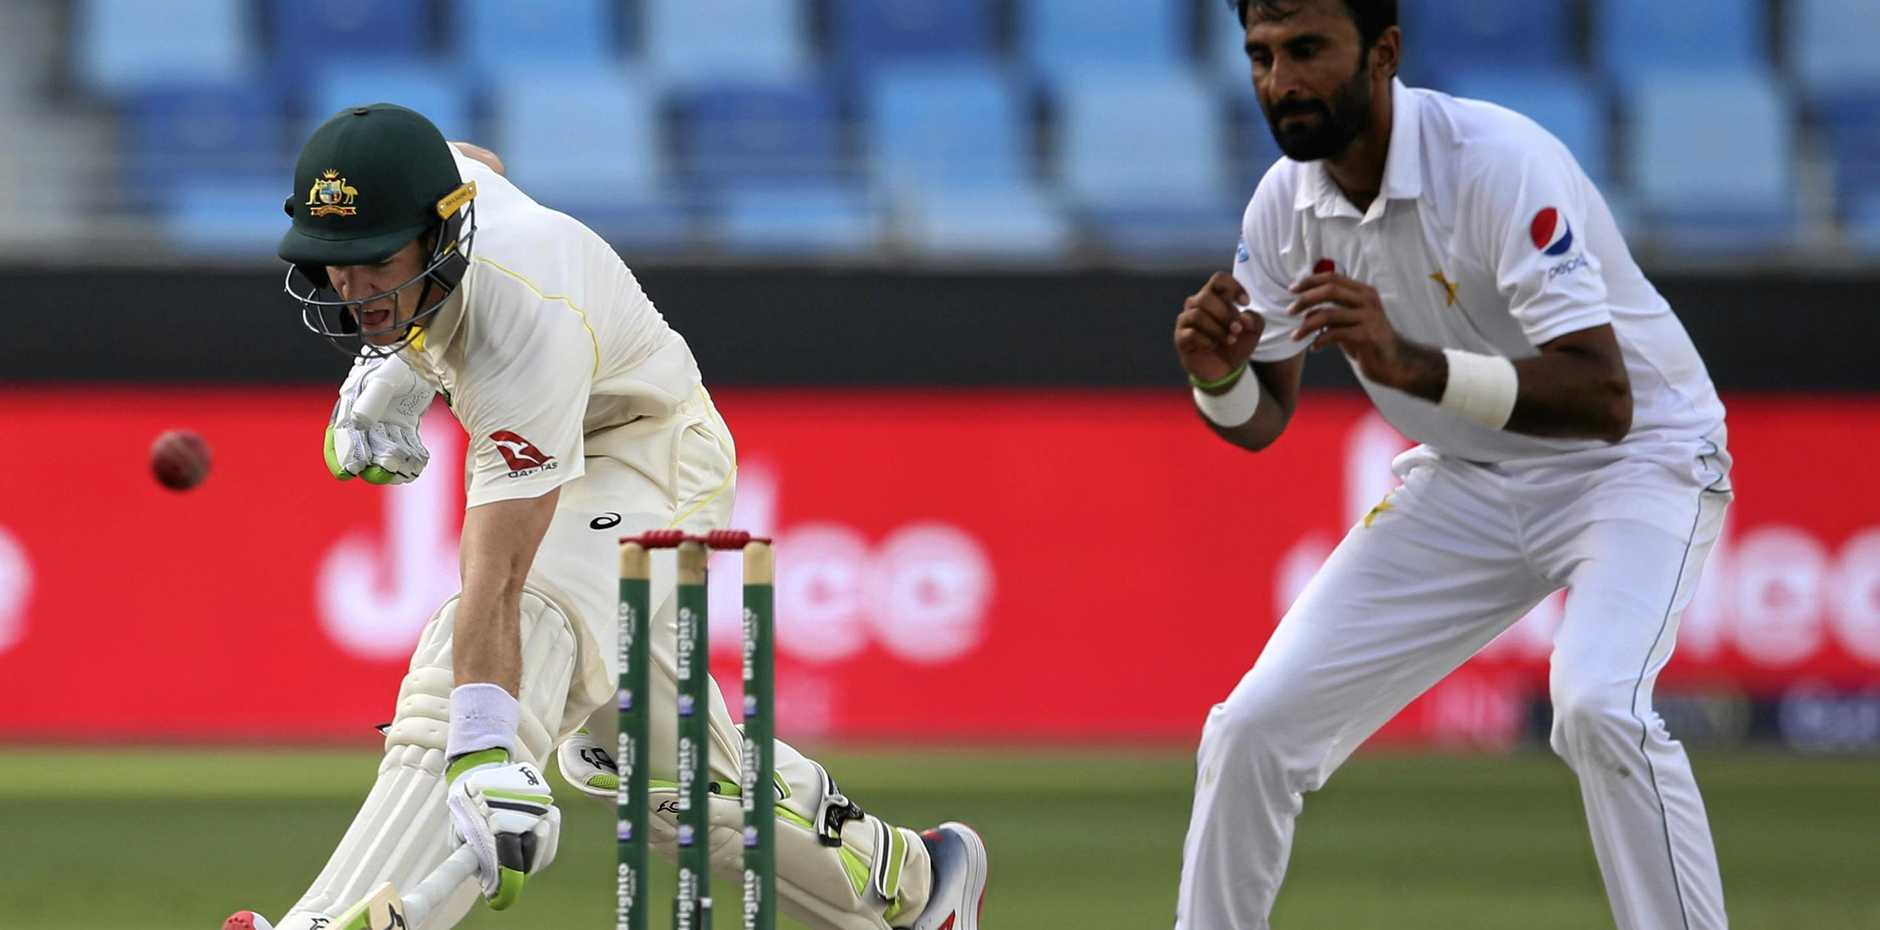 COMEBACK: Australian captain Tim Paine was one of the players that showed fight during the first test against Pakistan that ended in a draw.